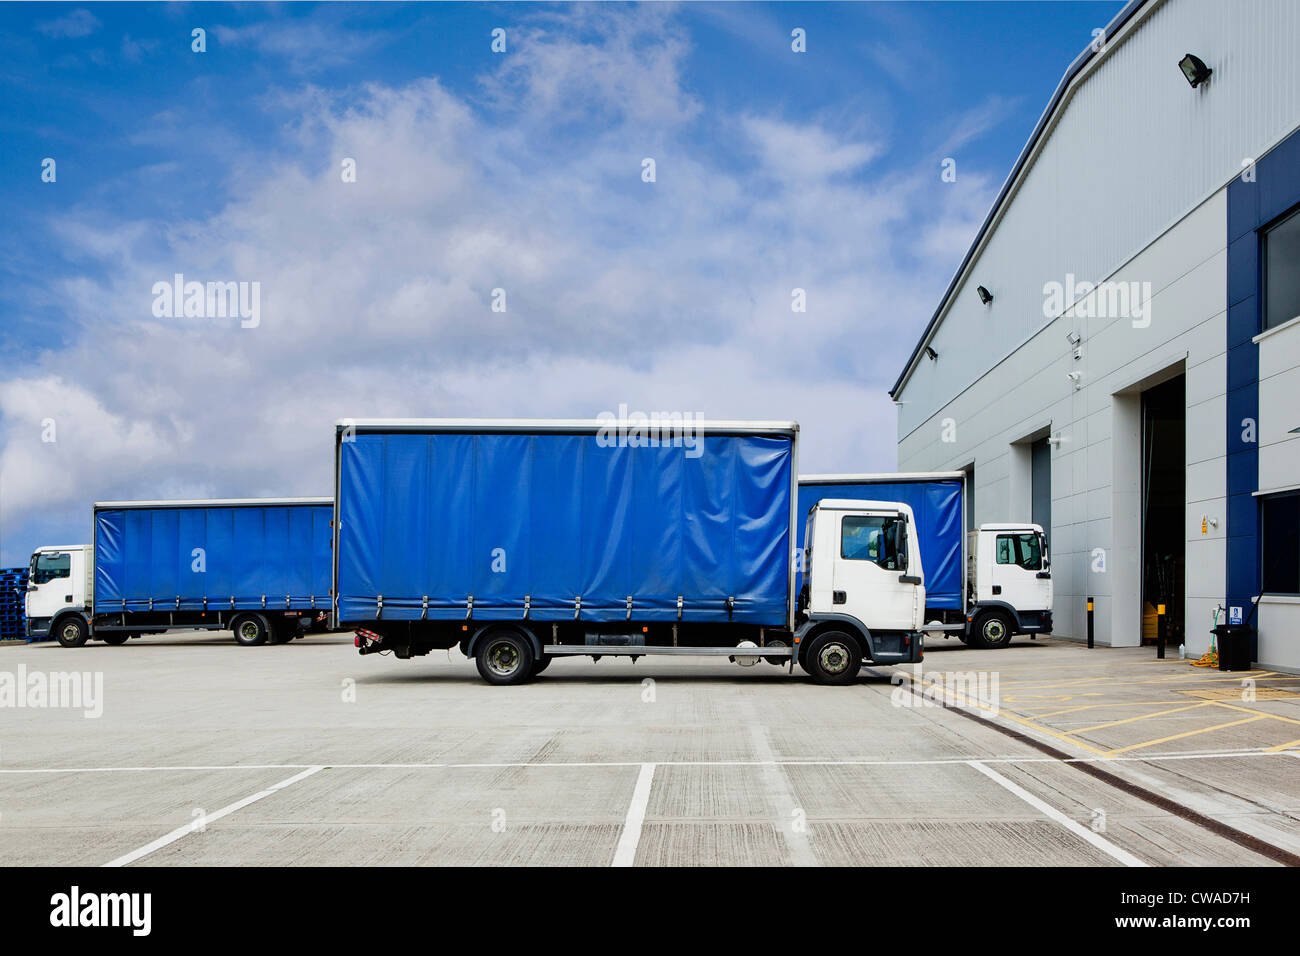 Trucks parked outside distribution warehouse - Stock Image